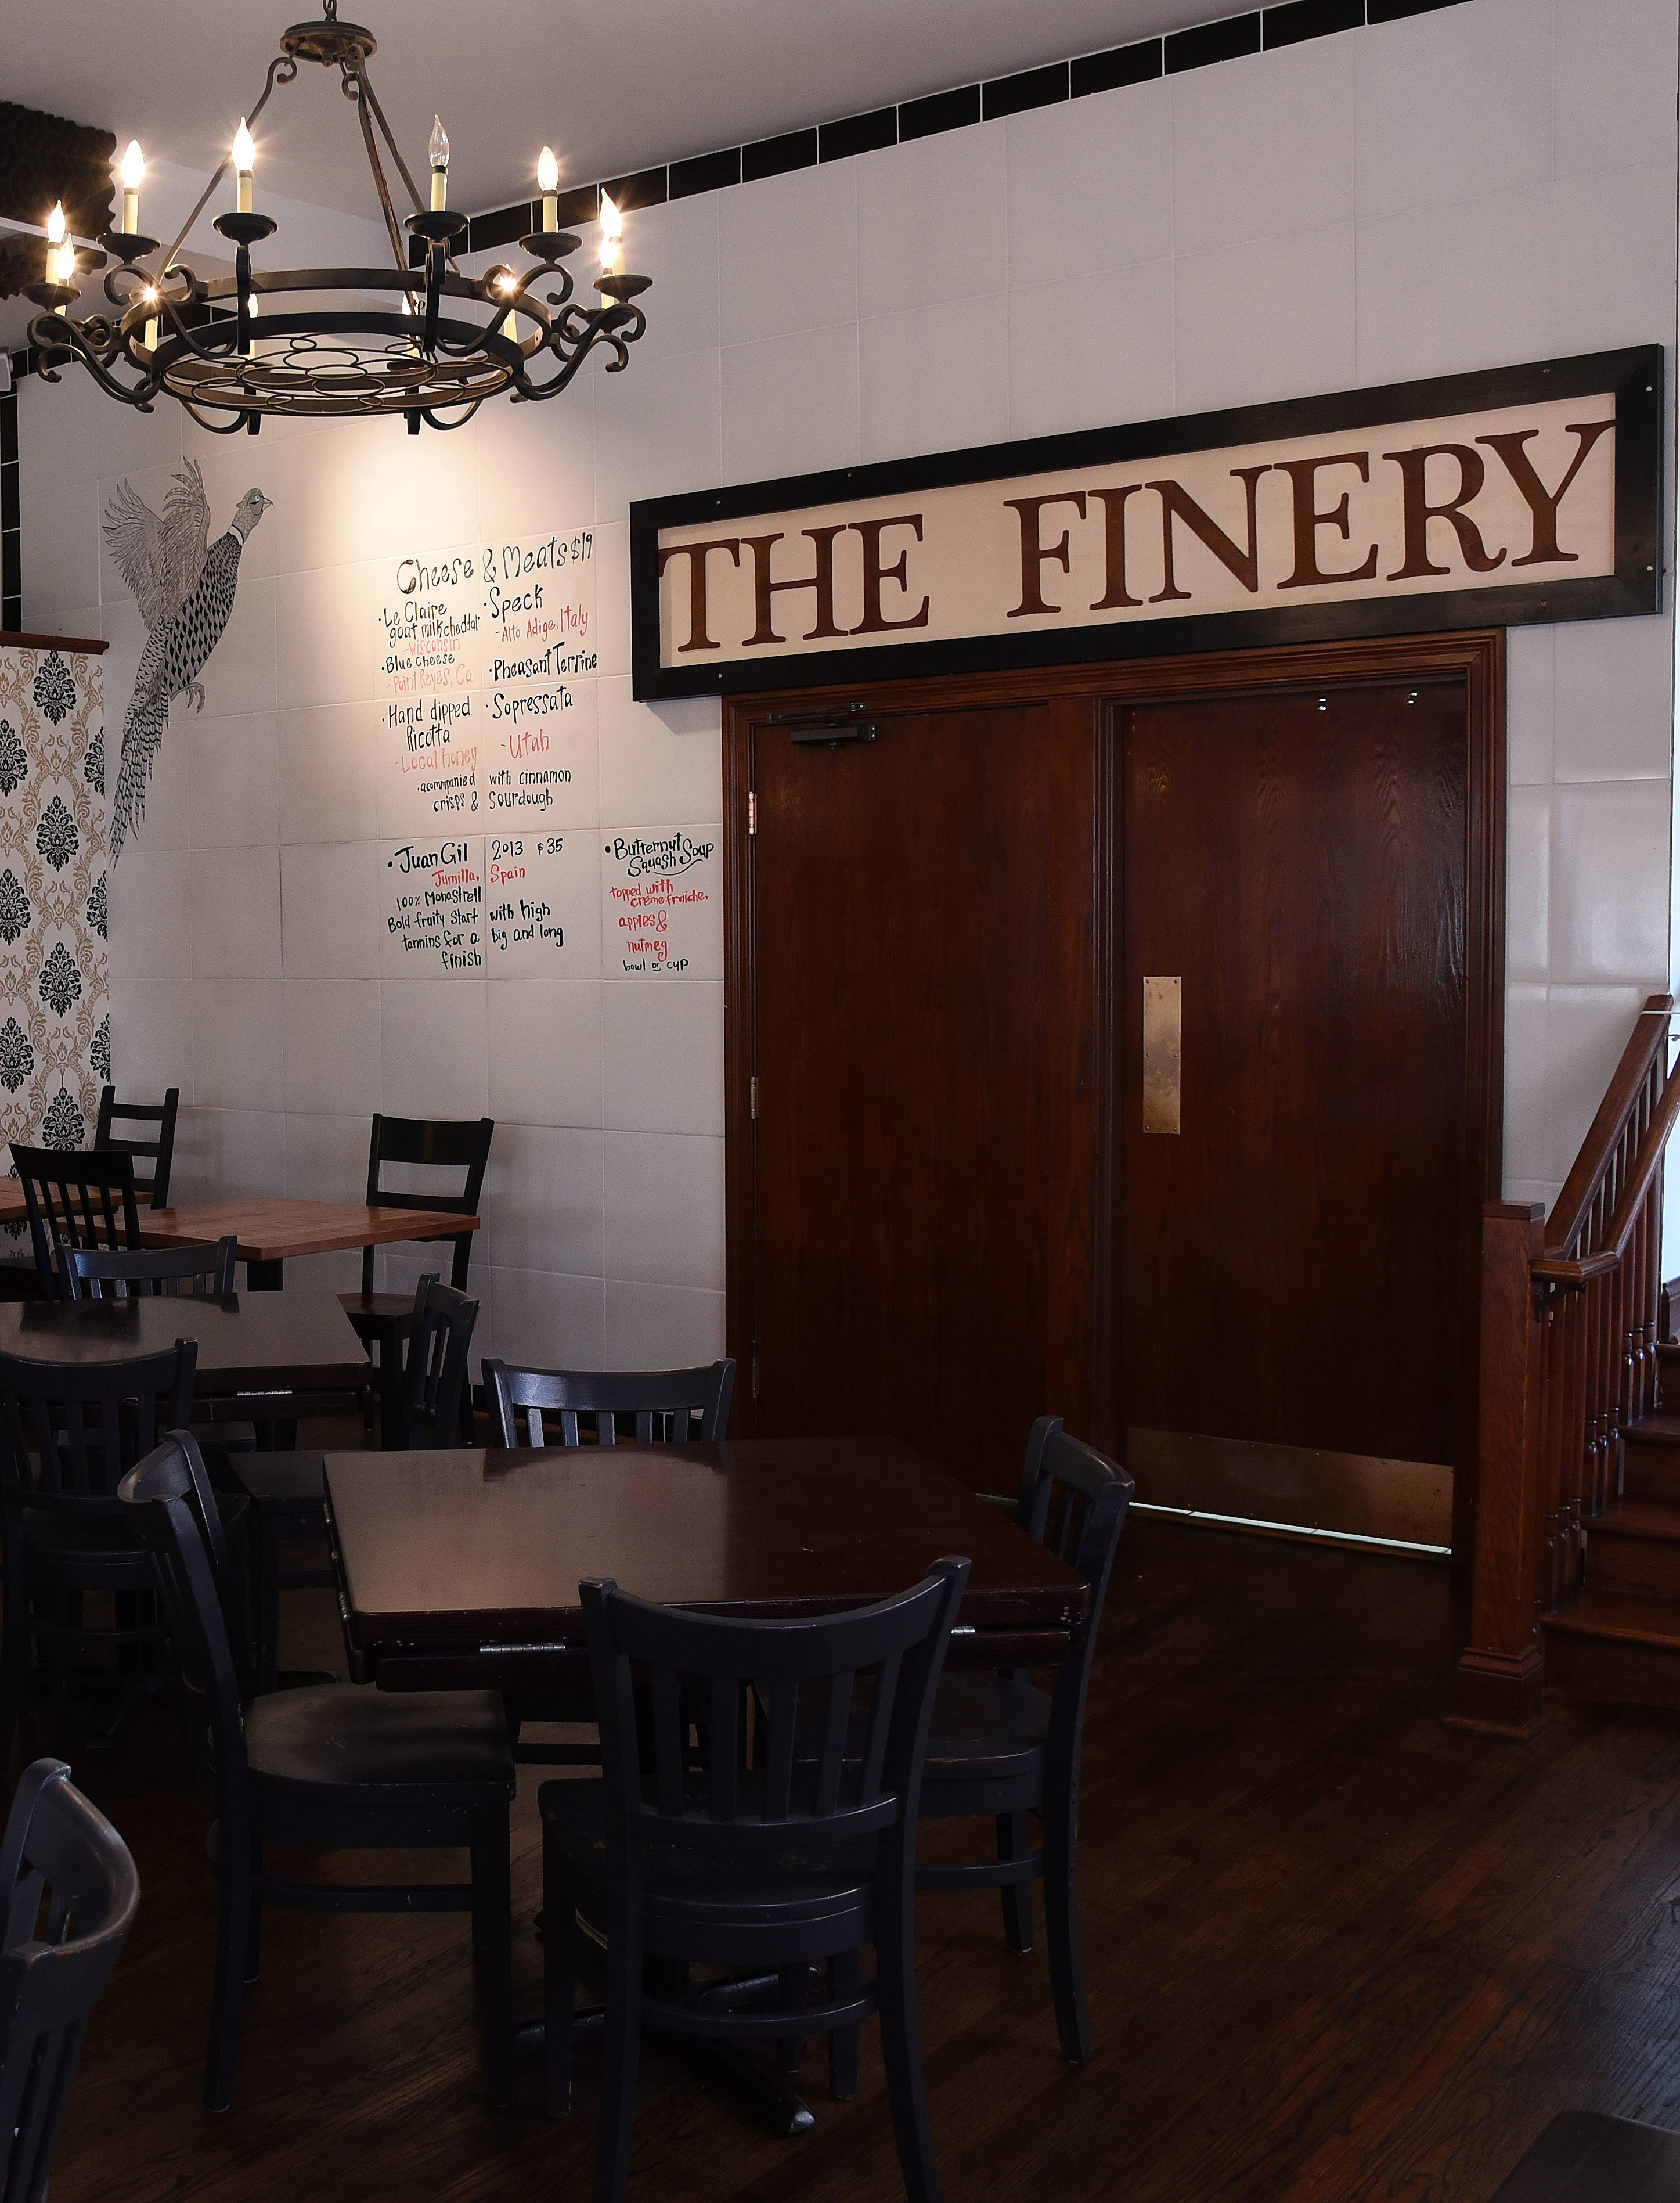 Menu specials are written on the tile walls at The Finery in St. Charles.